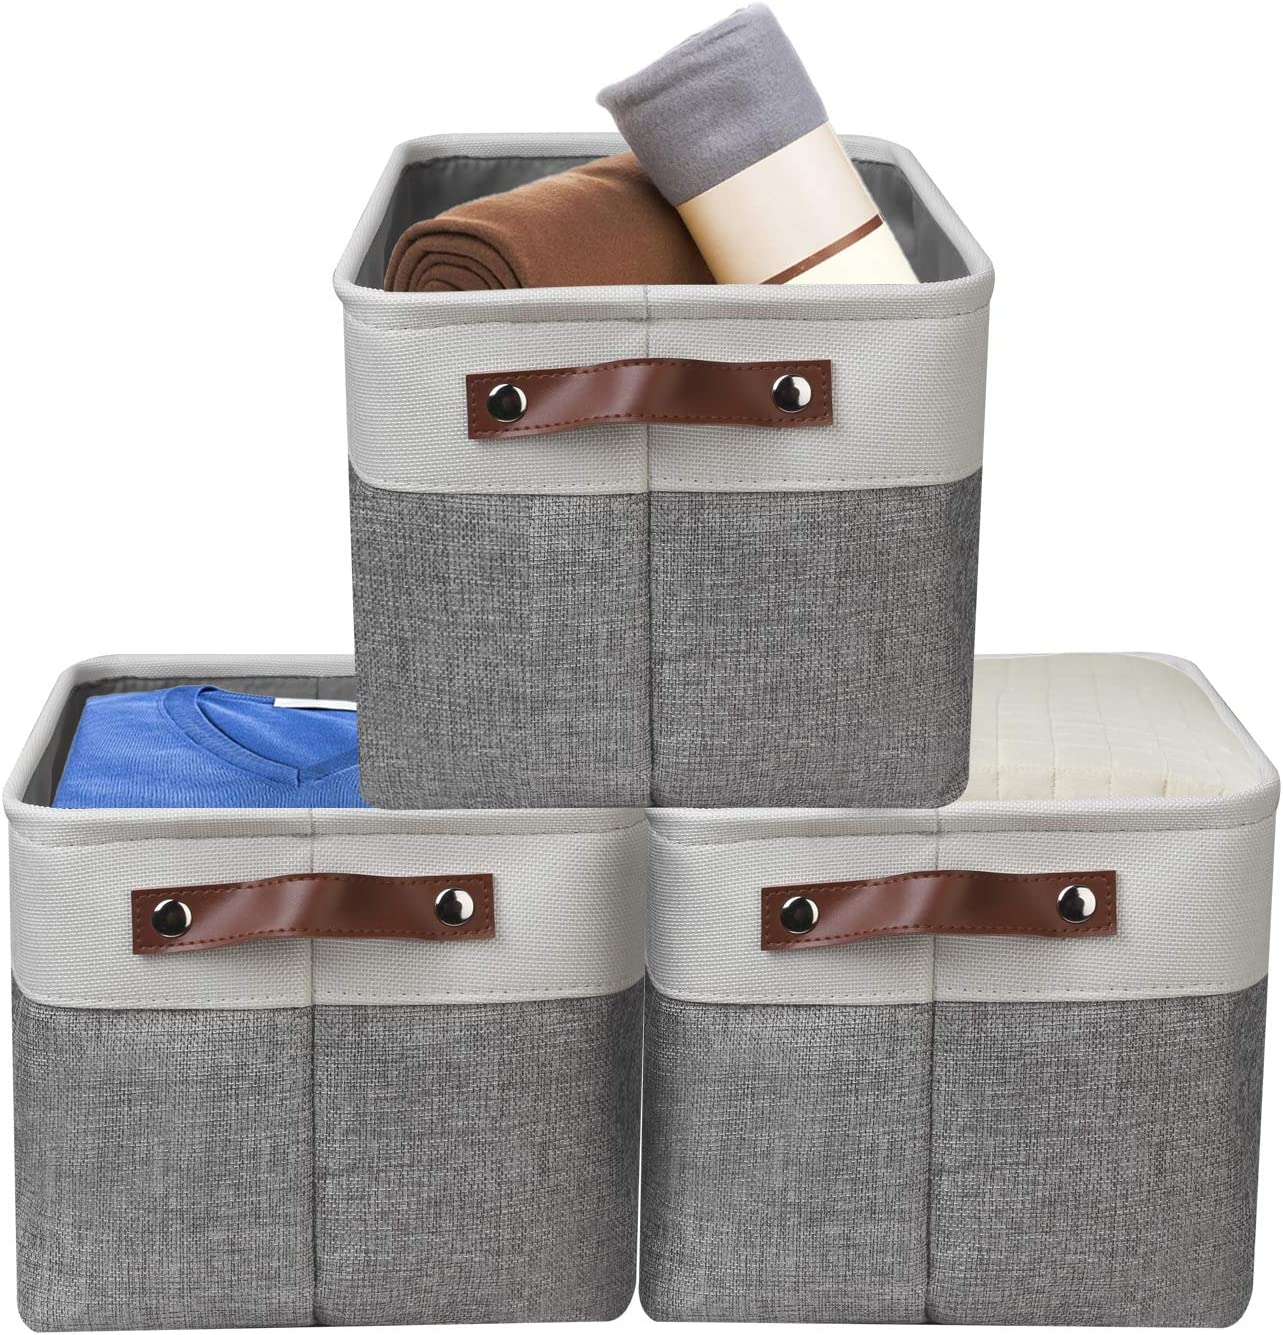 Awekris Foldable Storage Bins Storage Basket Set [3-Pack] Fabric Collapsible Organizer Cubes with Handles for Organizing Shelf Nursery Home Closet and Office (Grey)